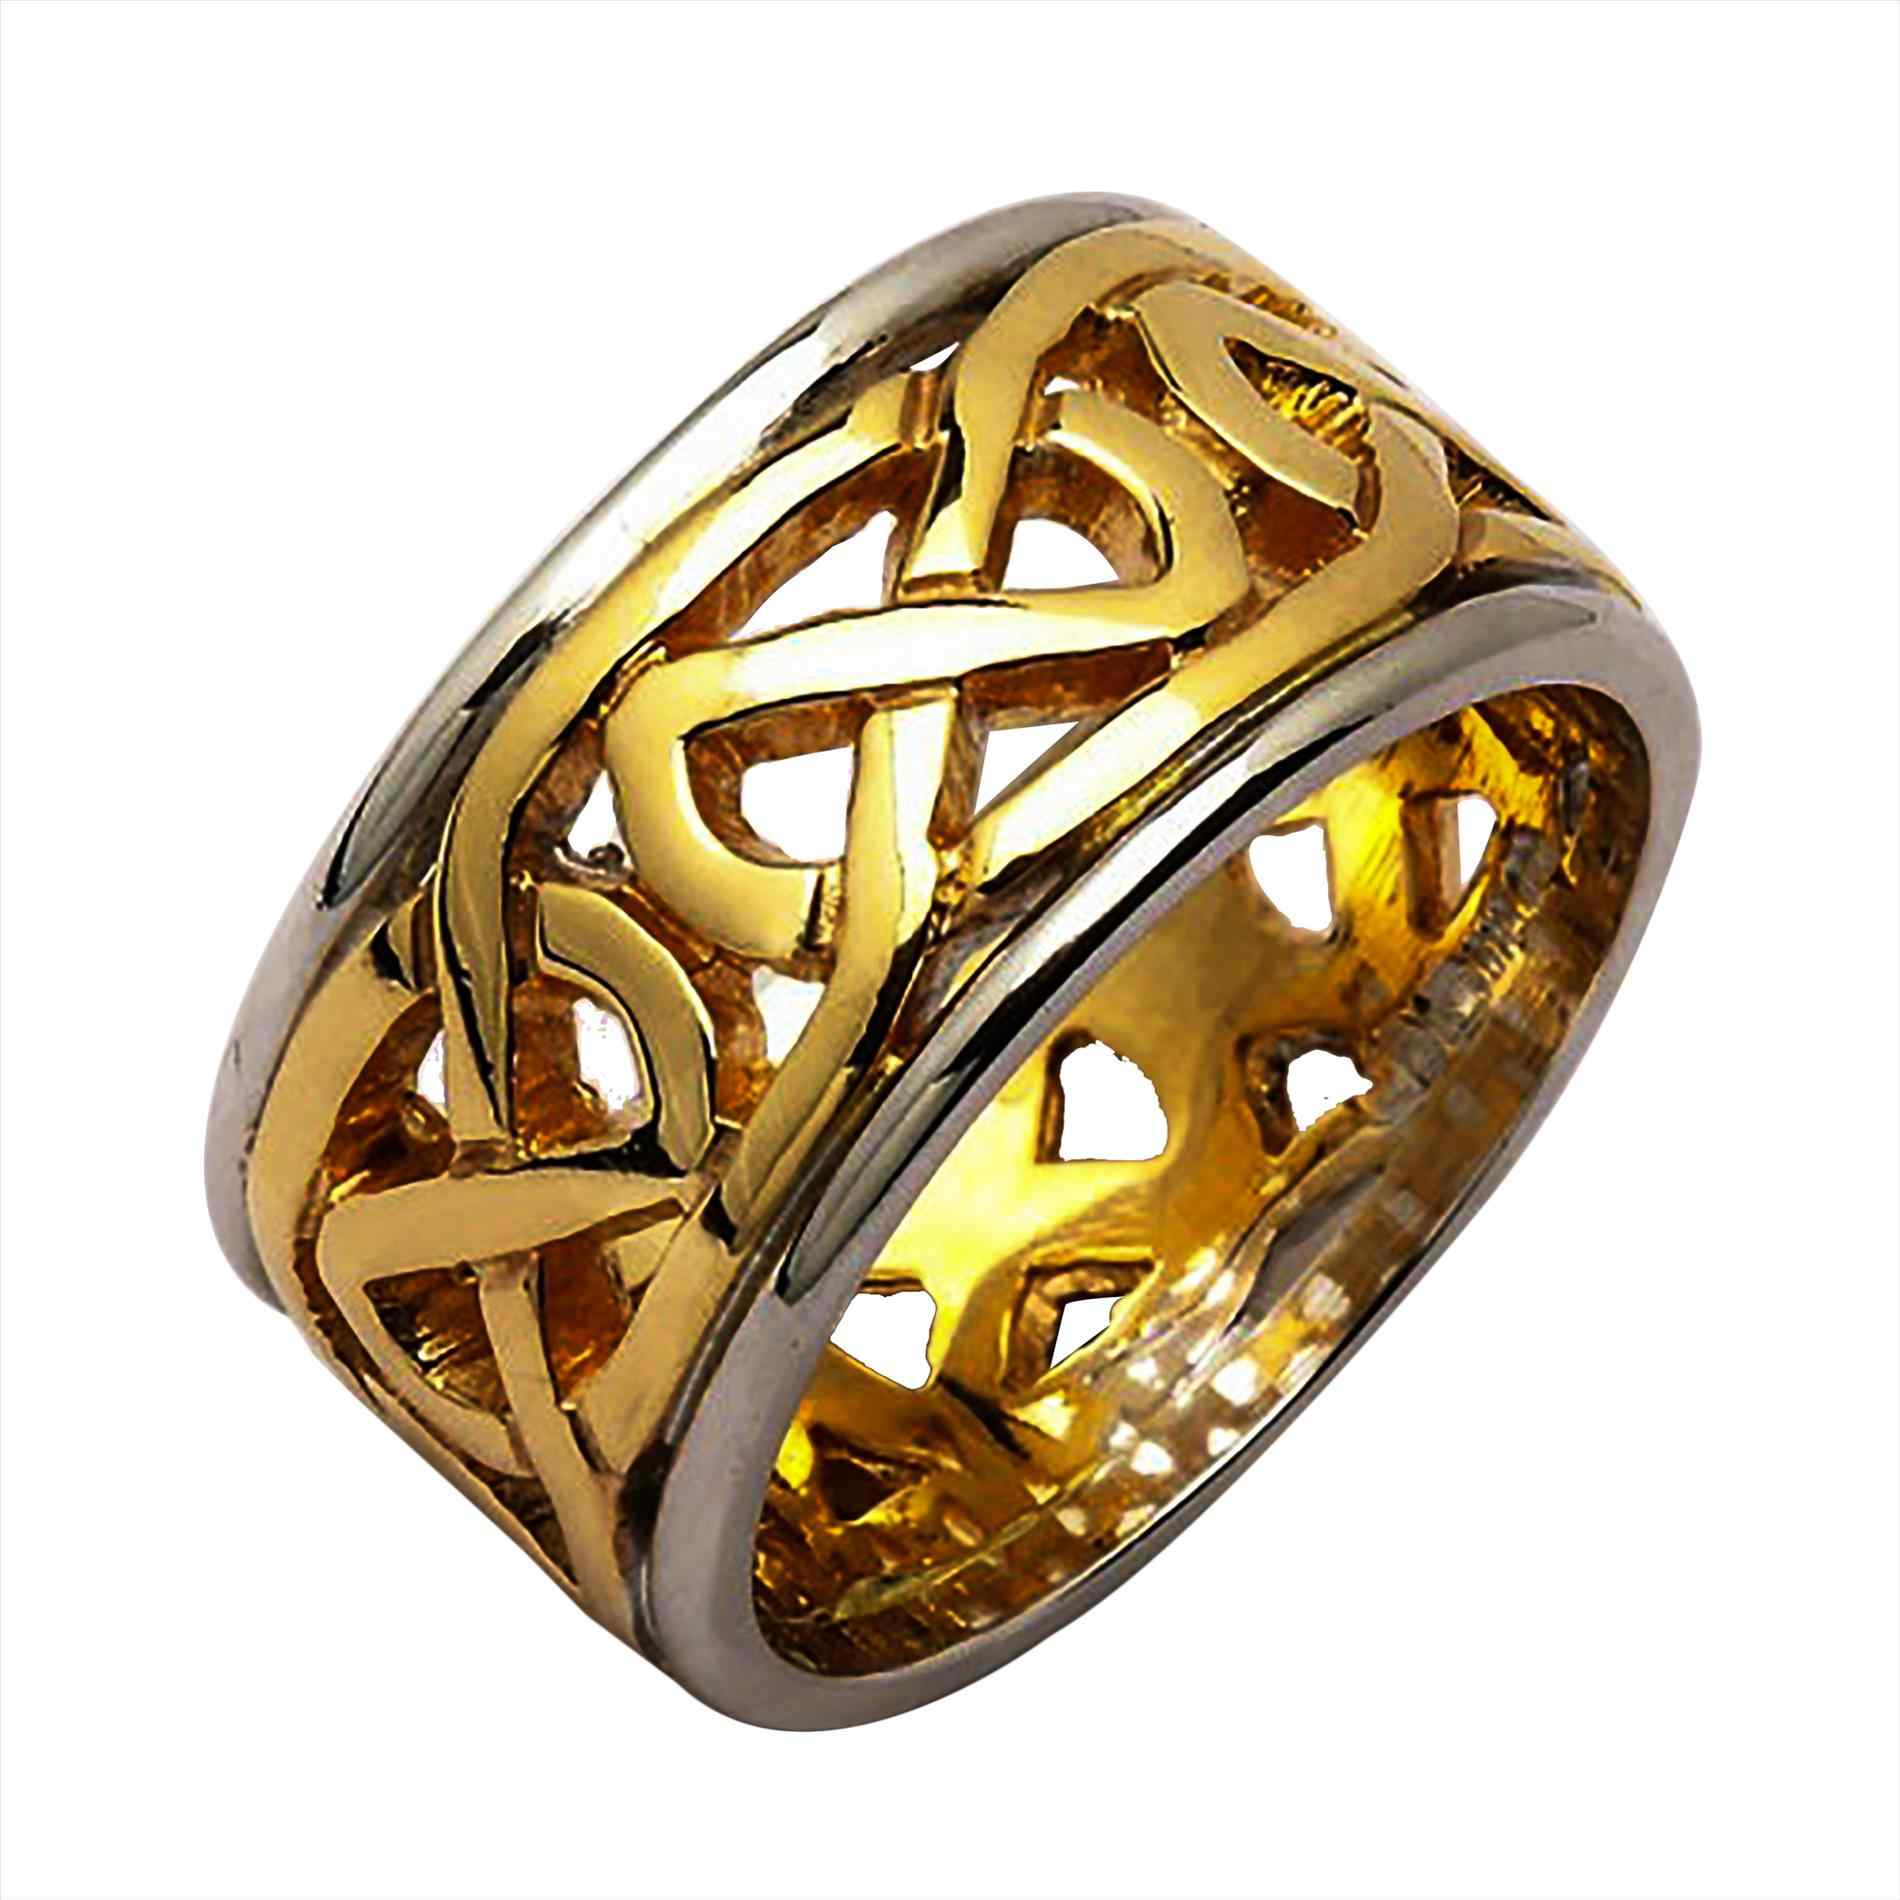 celtic claddach hallmark and stunning gaelic scottish rings engagement to view inspirations of pertaining sterling silver